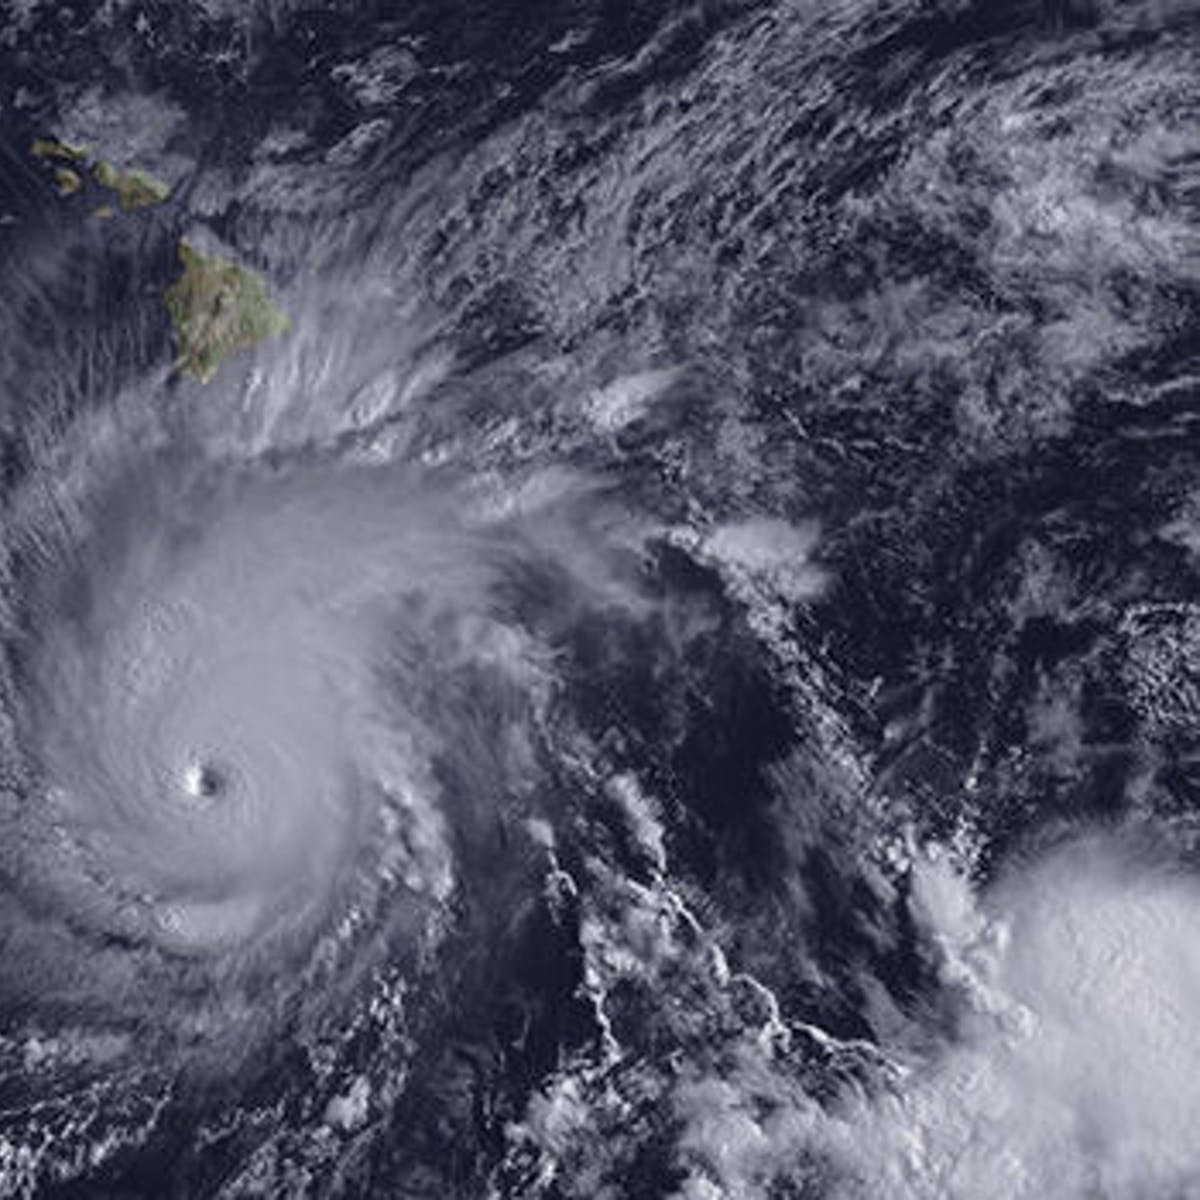 Maps of Hawaii's Hurricane Lane Show How Close It Will Come ... Satellite Maps Of Hawaii Blank on blank us map including alaska and hawaii, map from usa to hawaii, map showing hawaii, blank indiana map, blank florida map, outline of hawaii, blank town map, blank map canada and alaska, street map oahu hawaii, blank world map, size of hawaii, blank wisconsin map, blank texas map, blank island map, blank georgia map, blank us map with alaska and hawaii, blank rpg maps, blank oklahoma map, blank oahu map, detailed map kona hawaii,